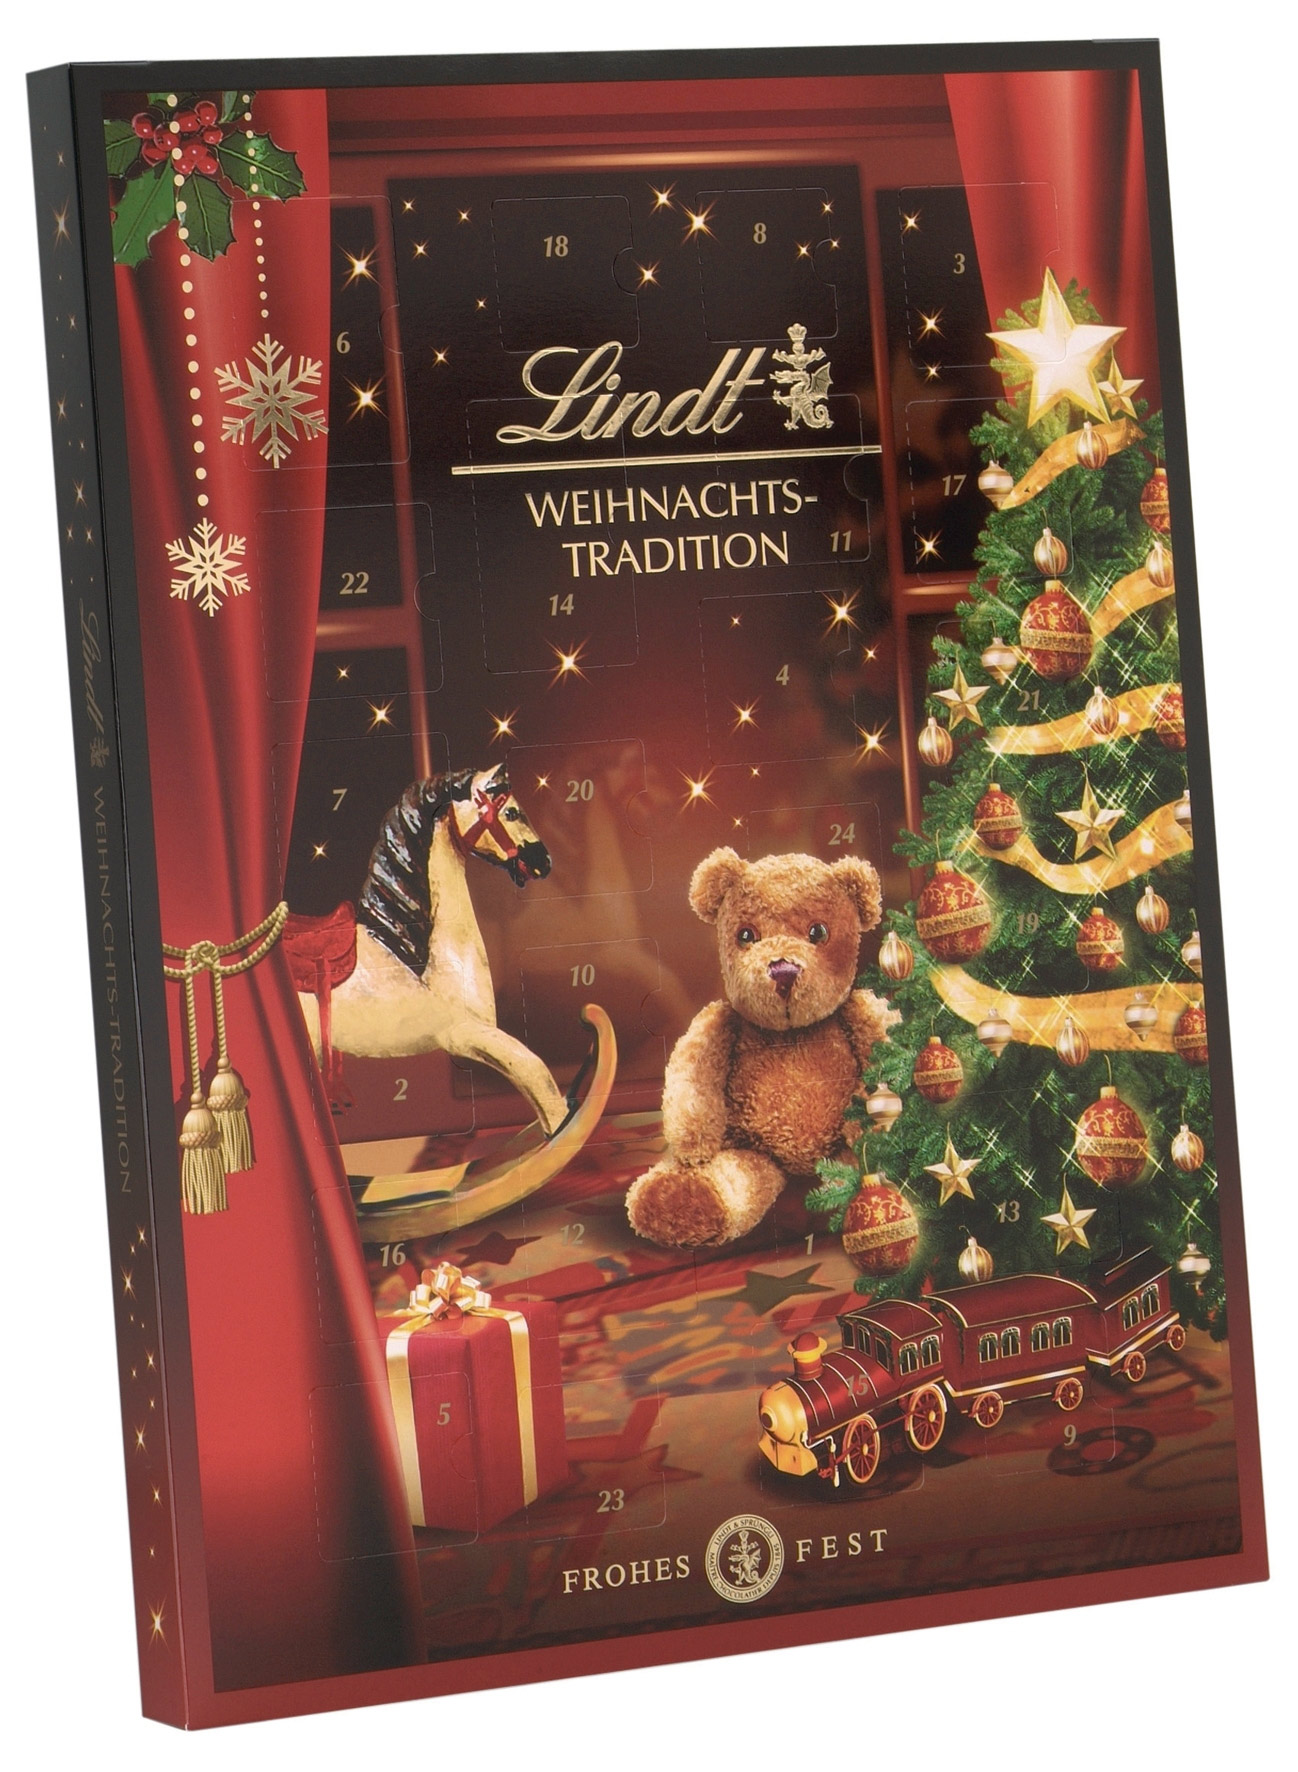 lindt weihnachtstradition adventskalender pralinen 253g online kaufen bei lieferello. Black Bedroom Furniture Sets. Home Design Ideas